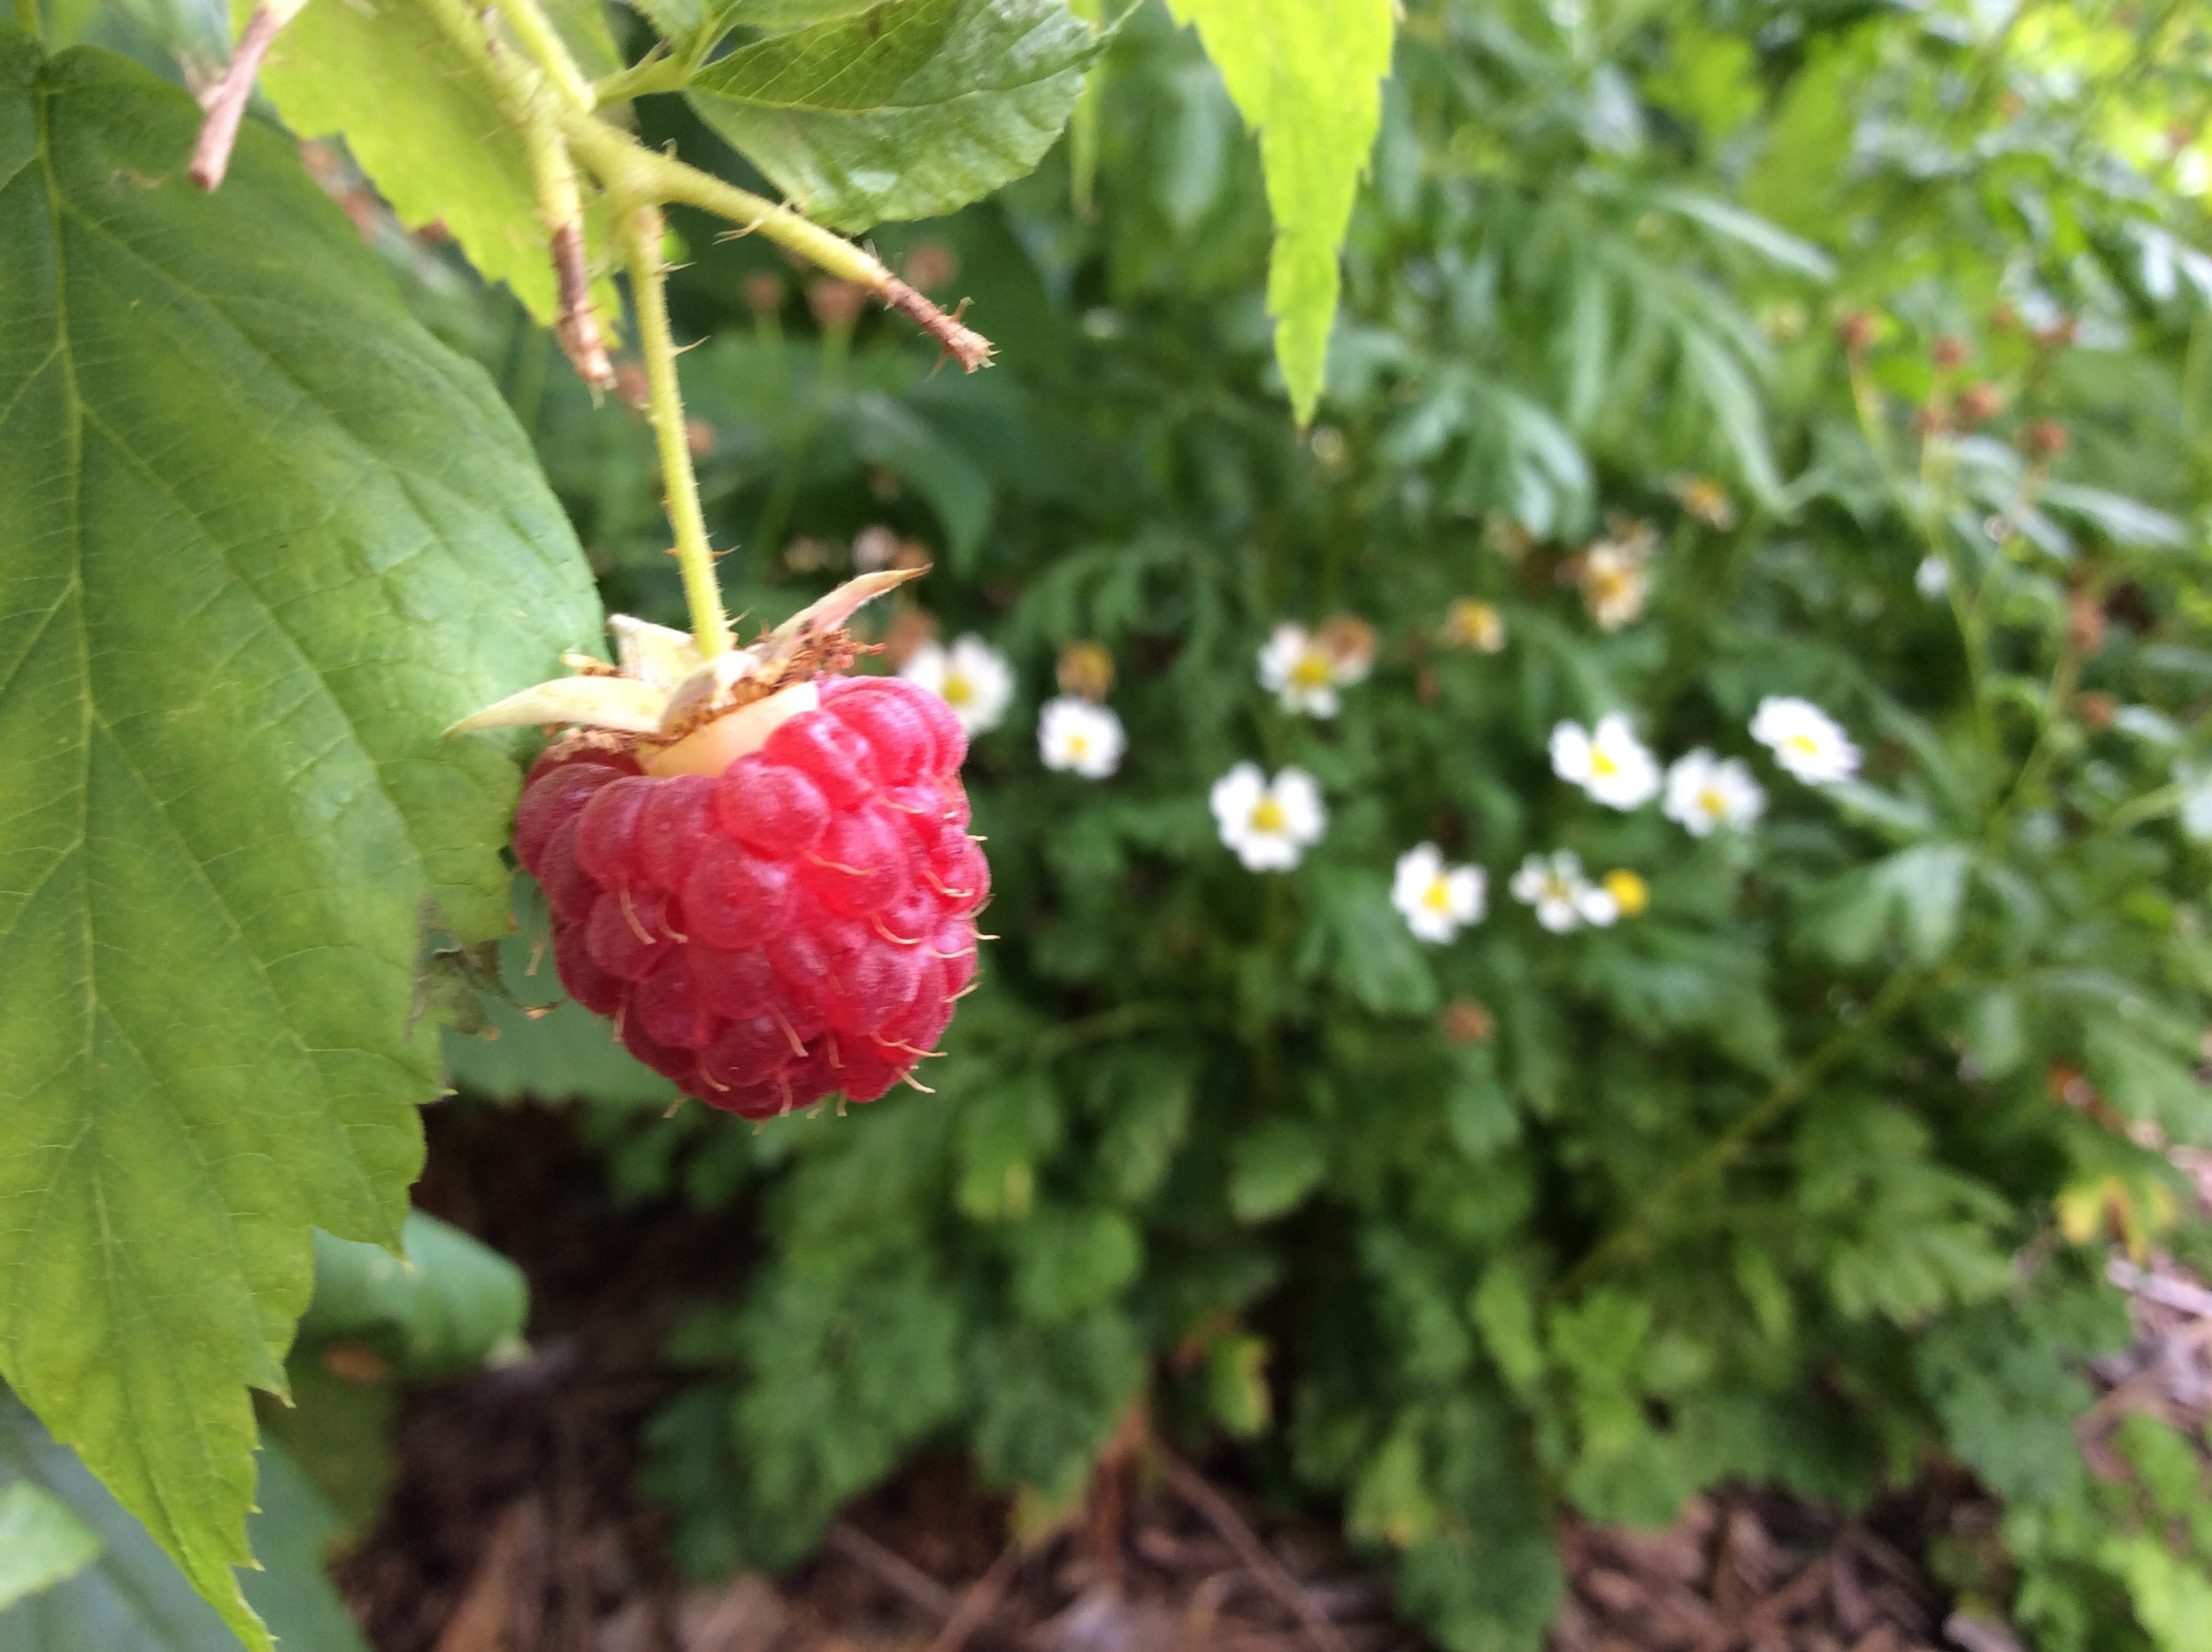 This raspberry didn't last long after I took this photo - yum!